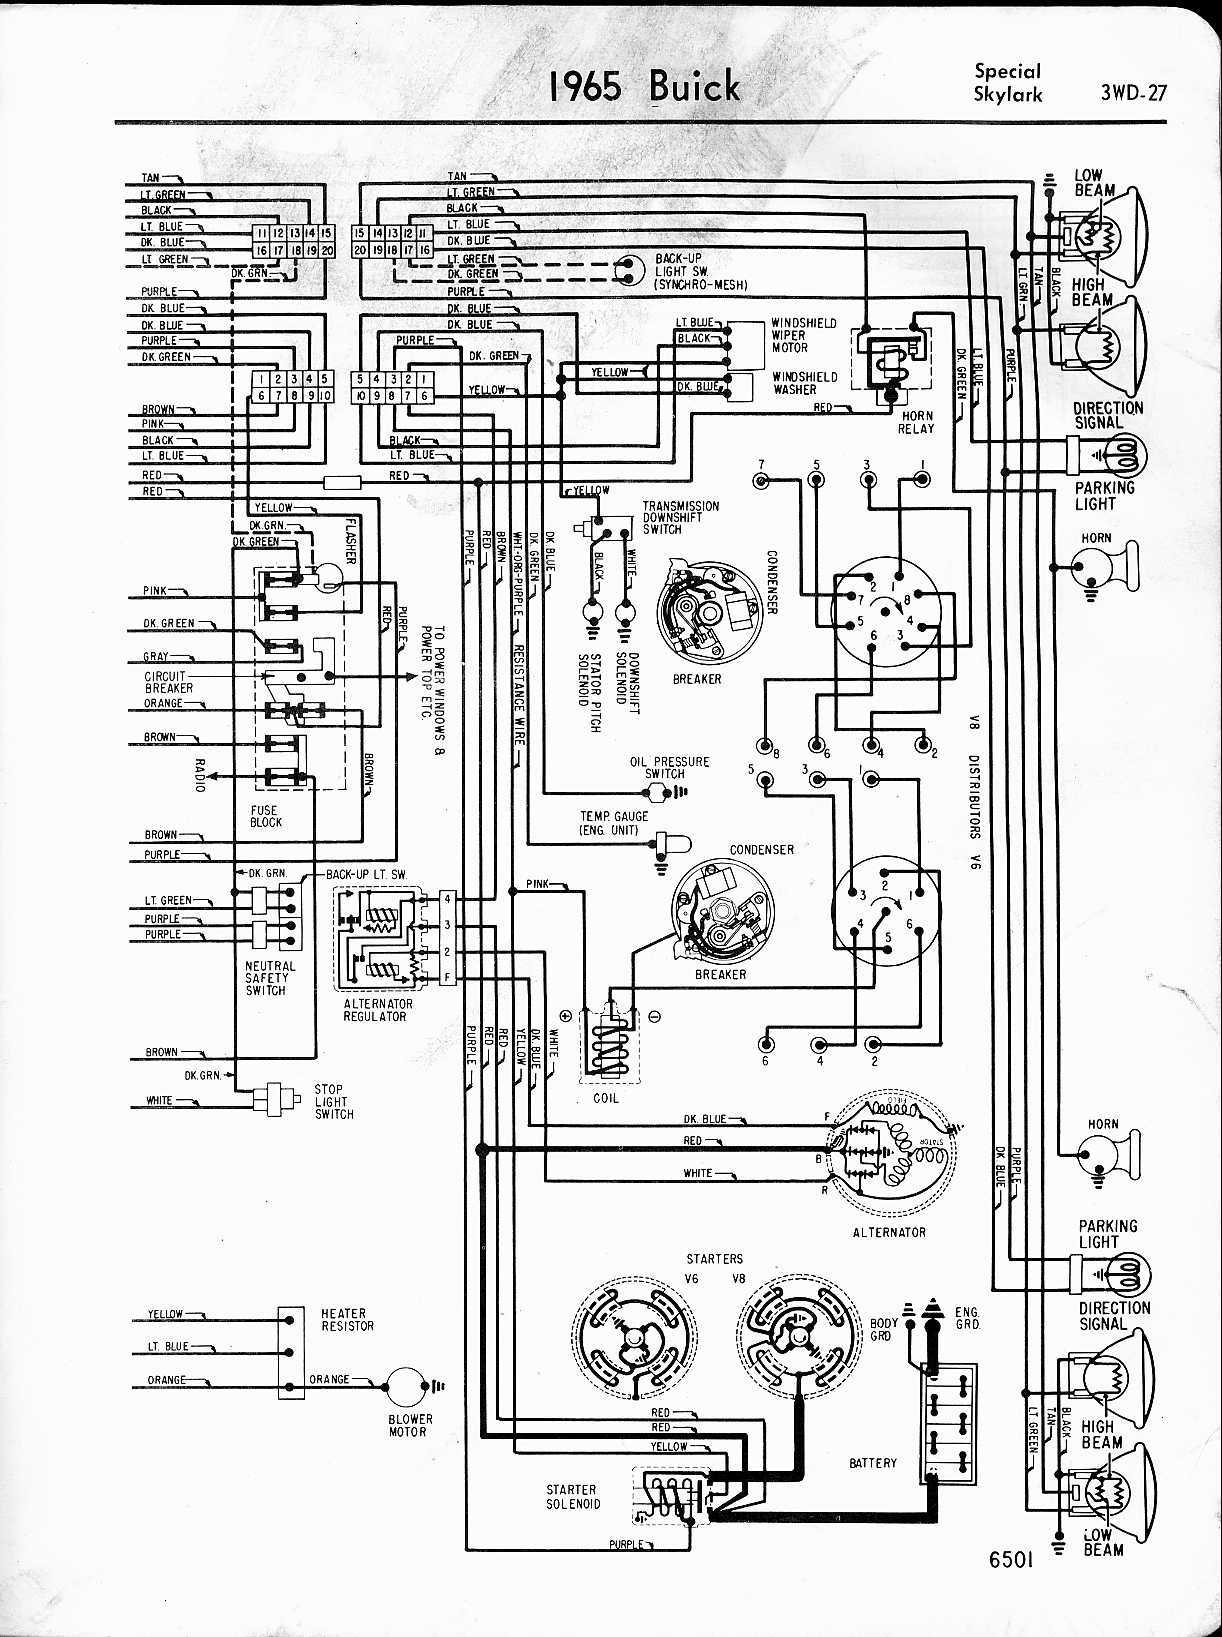 1997 Buick Lesabre Fuse Box Diagram Wiring Library